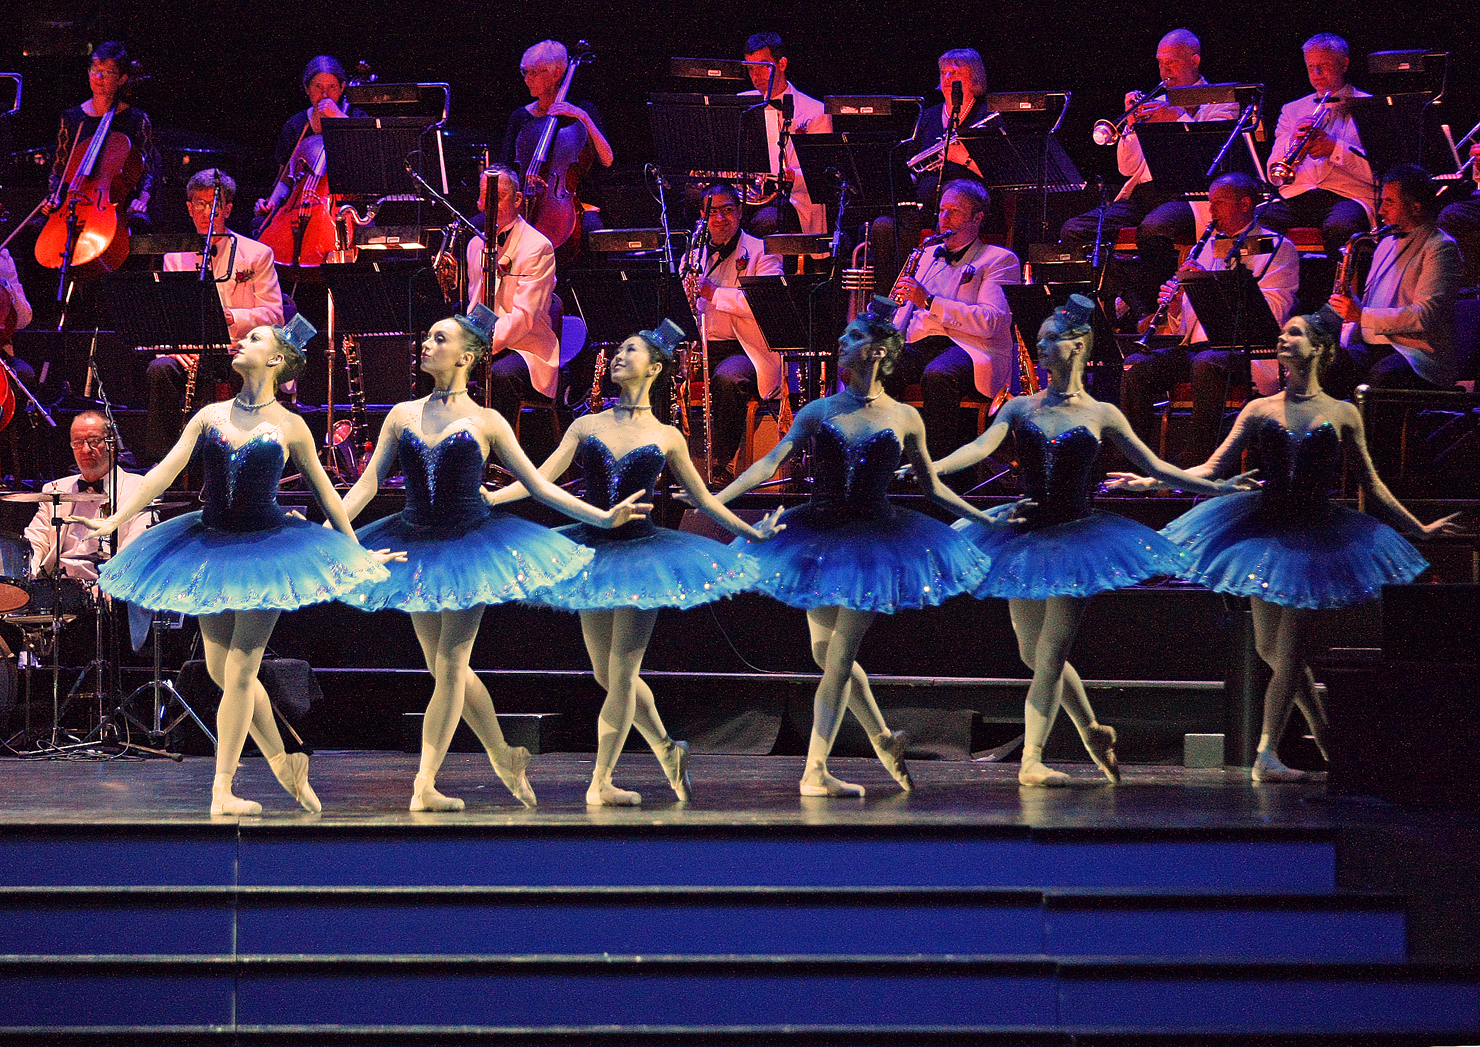 ballet dancers in a row wearing blue tutus